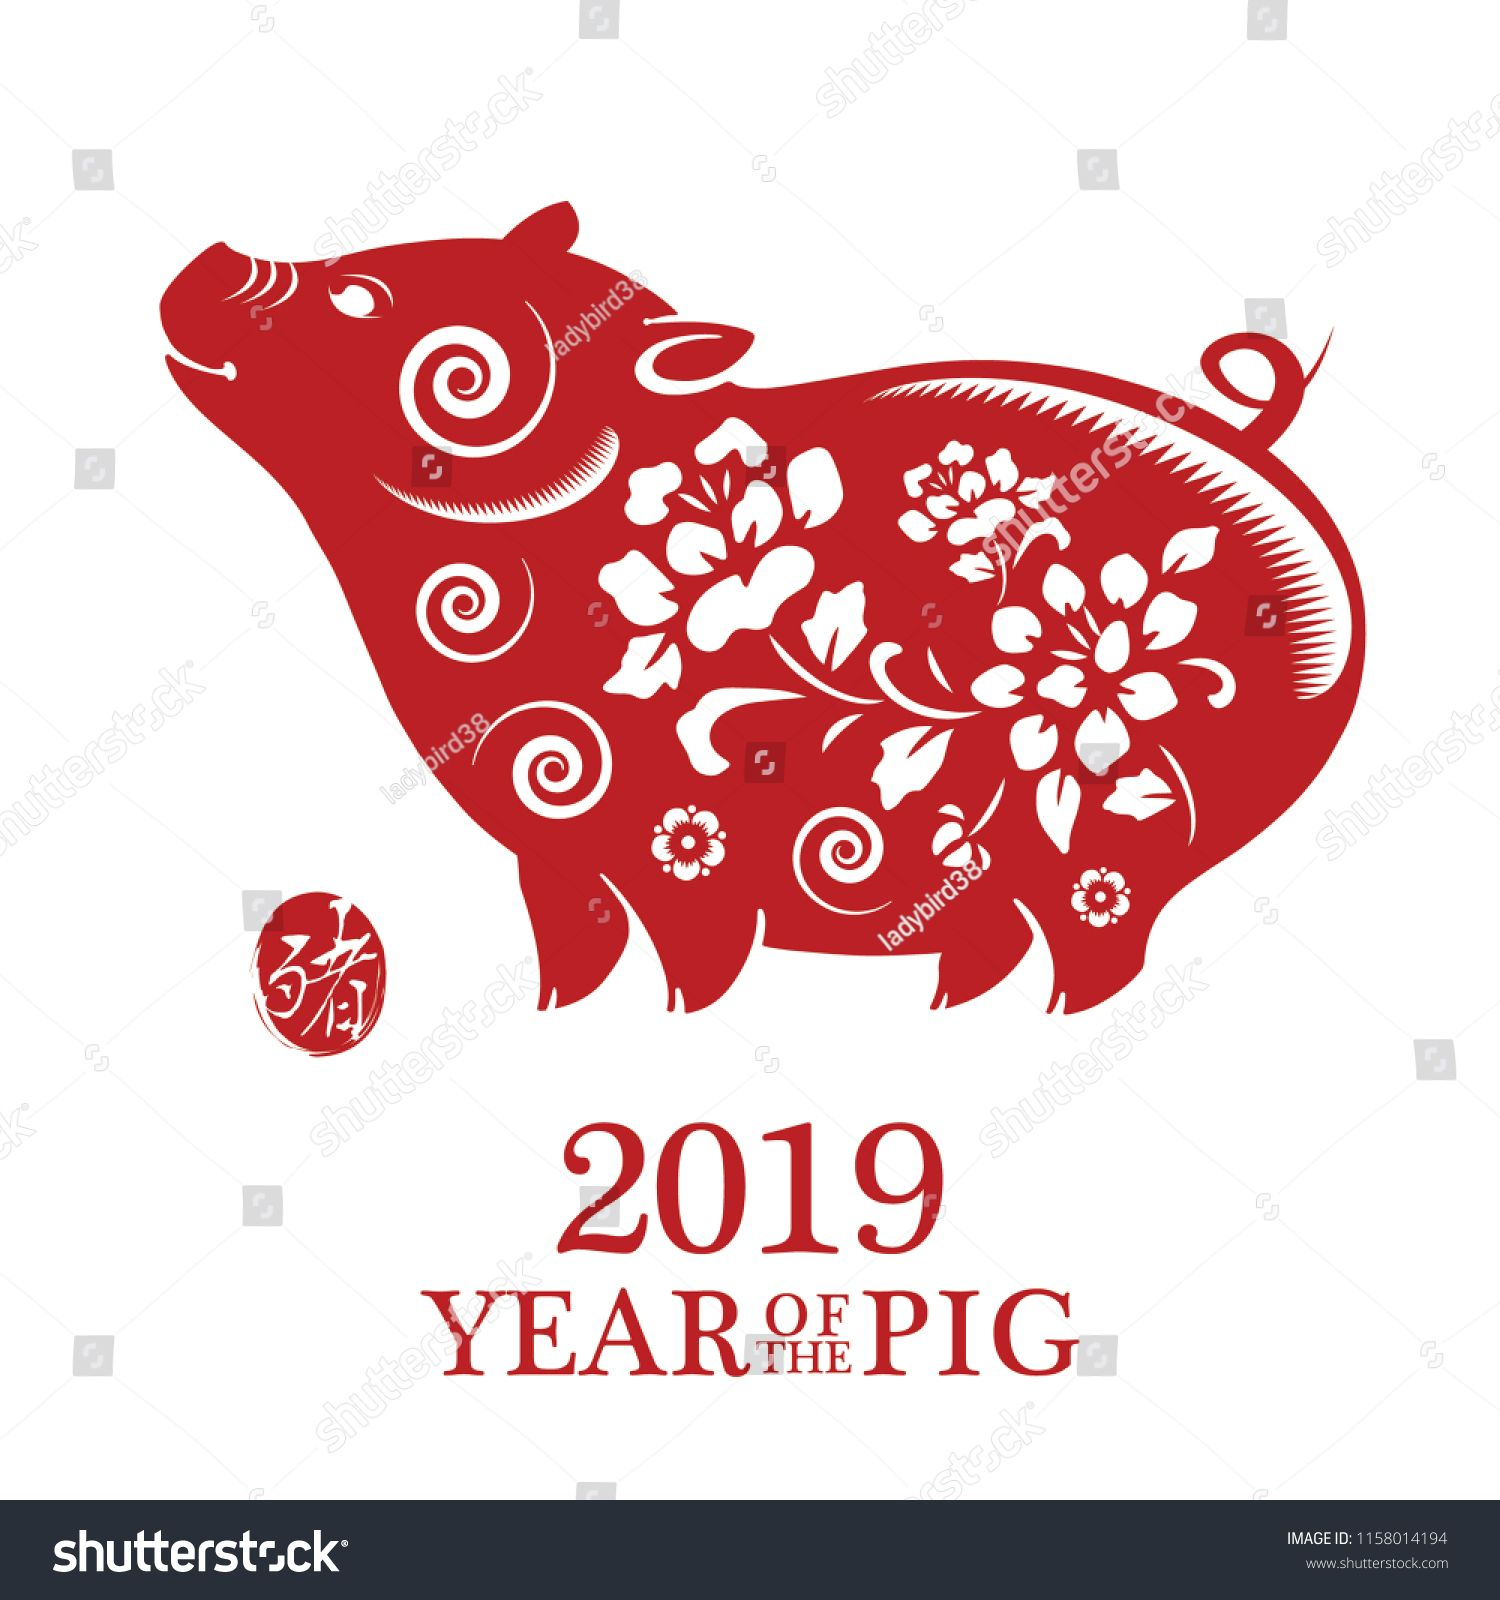 Chinese Dierenriem 2019 Pig Year Chinese Zodiac Symbol With Paper Cut Art Chinese New